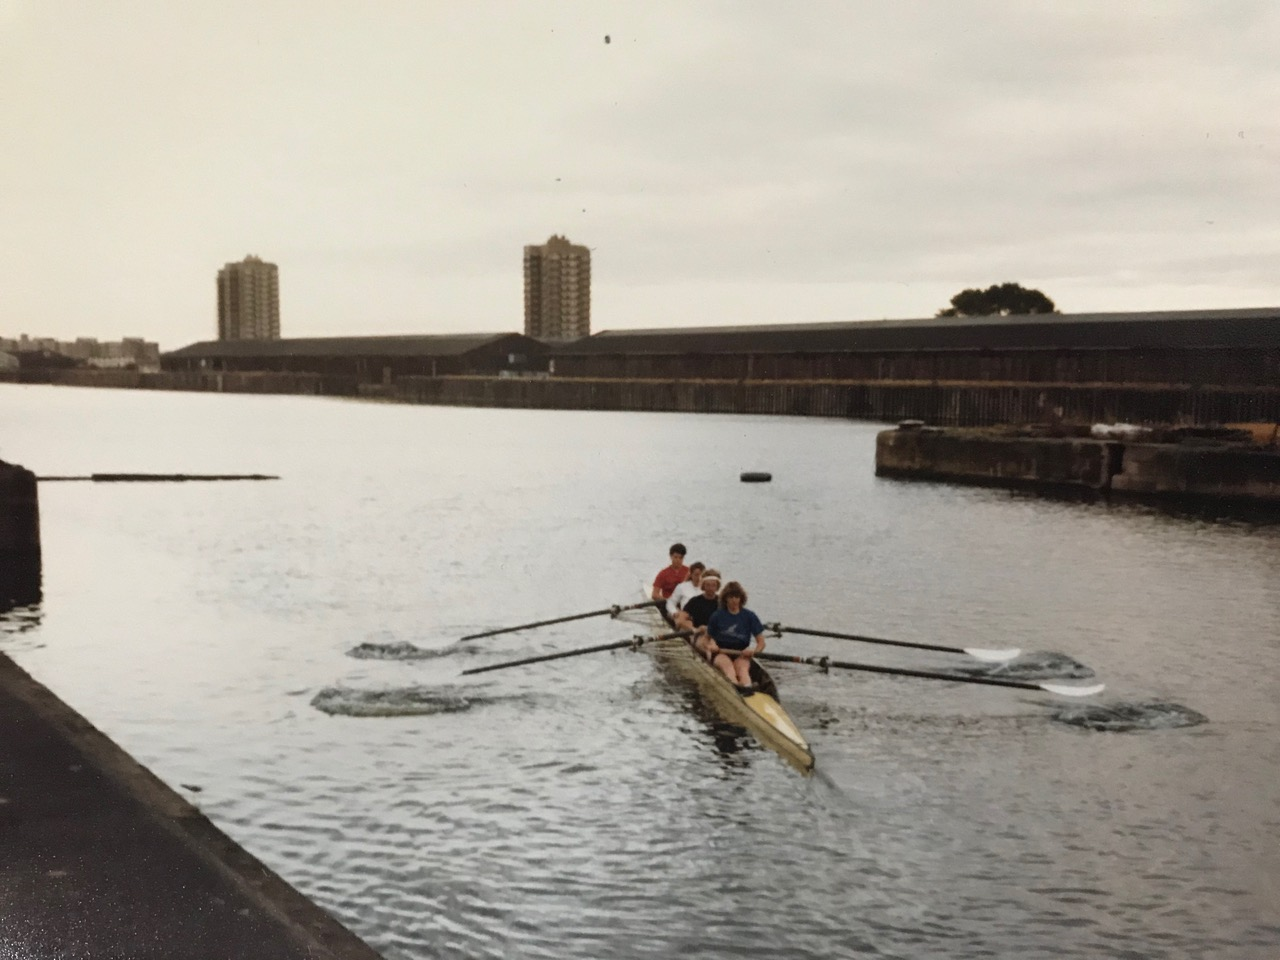 Rowing with warehouses in background